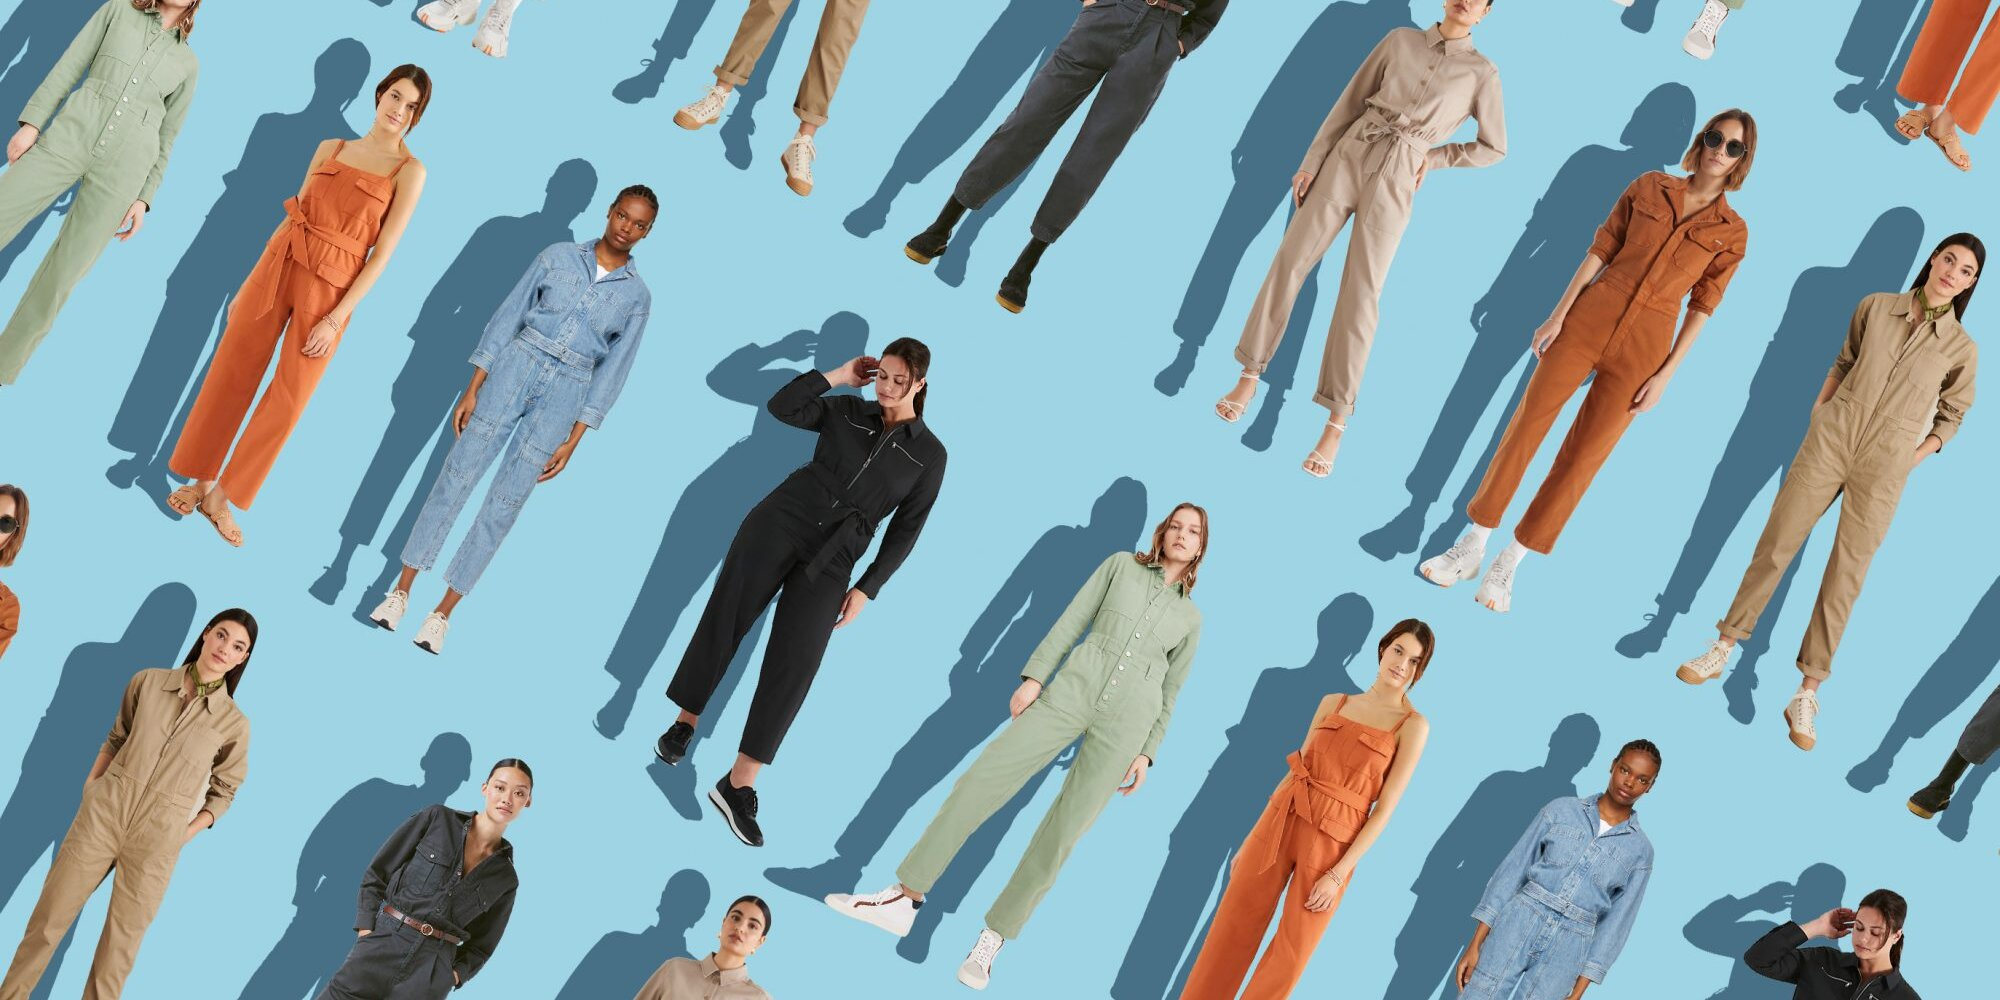 Utilitarian Jumpsuits Are the Hottest Summer Office Trend-Here Are the 14 Best